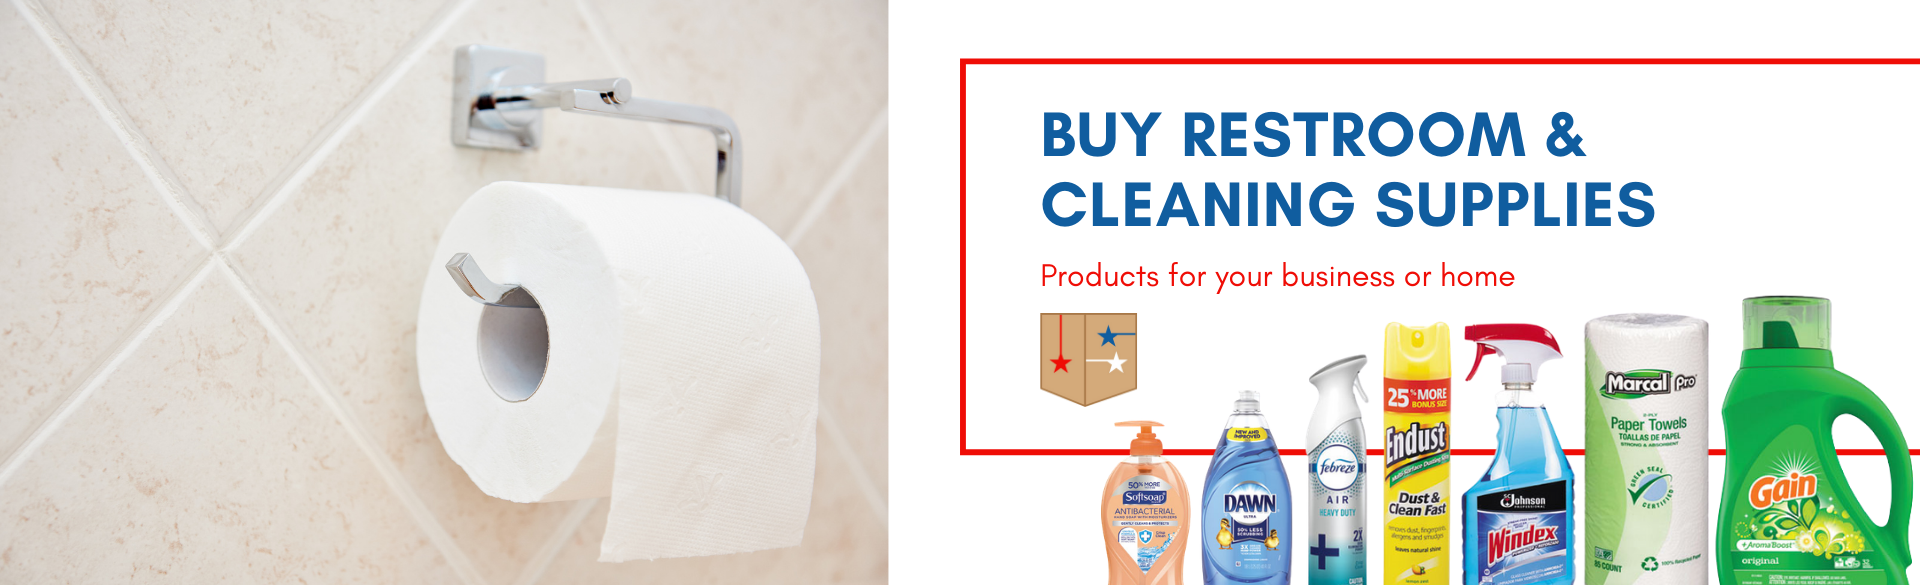 Buy restroom and cleaning supplies